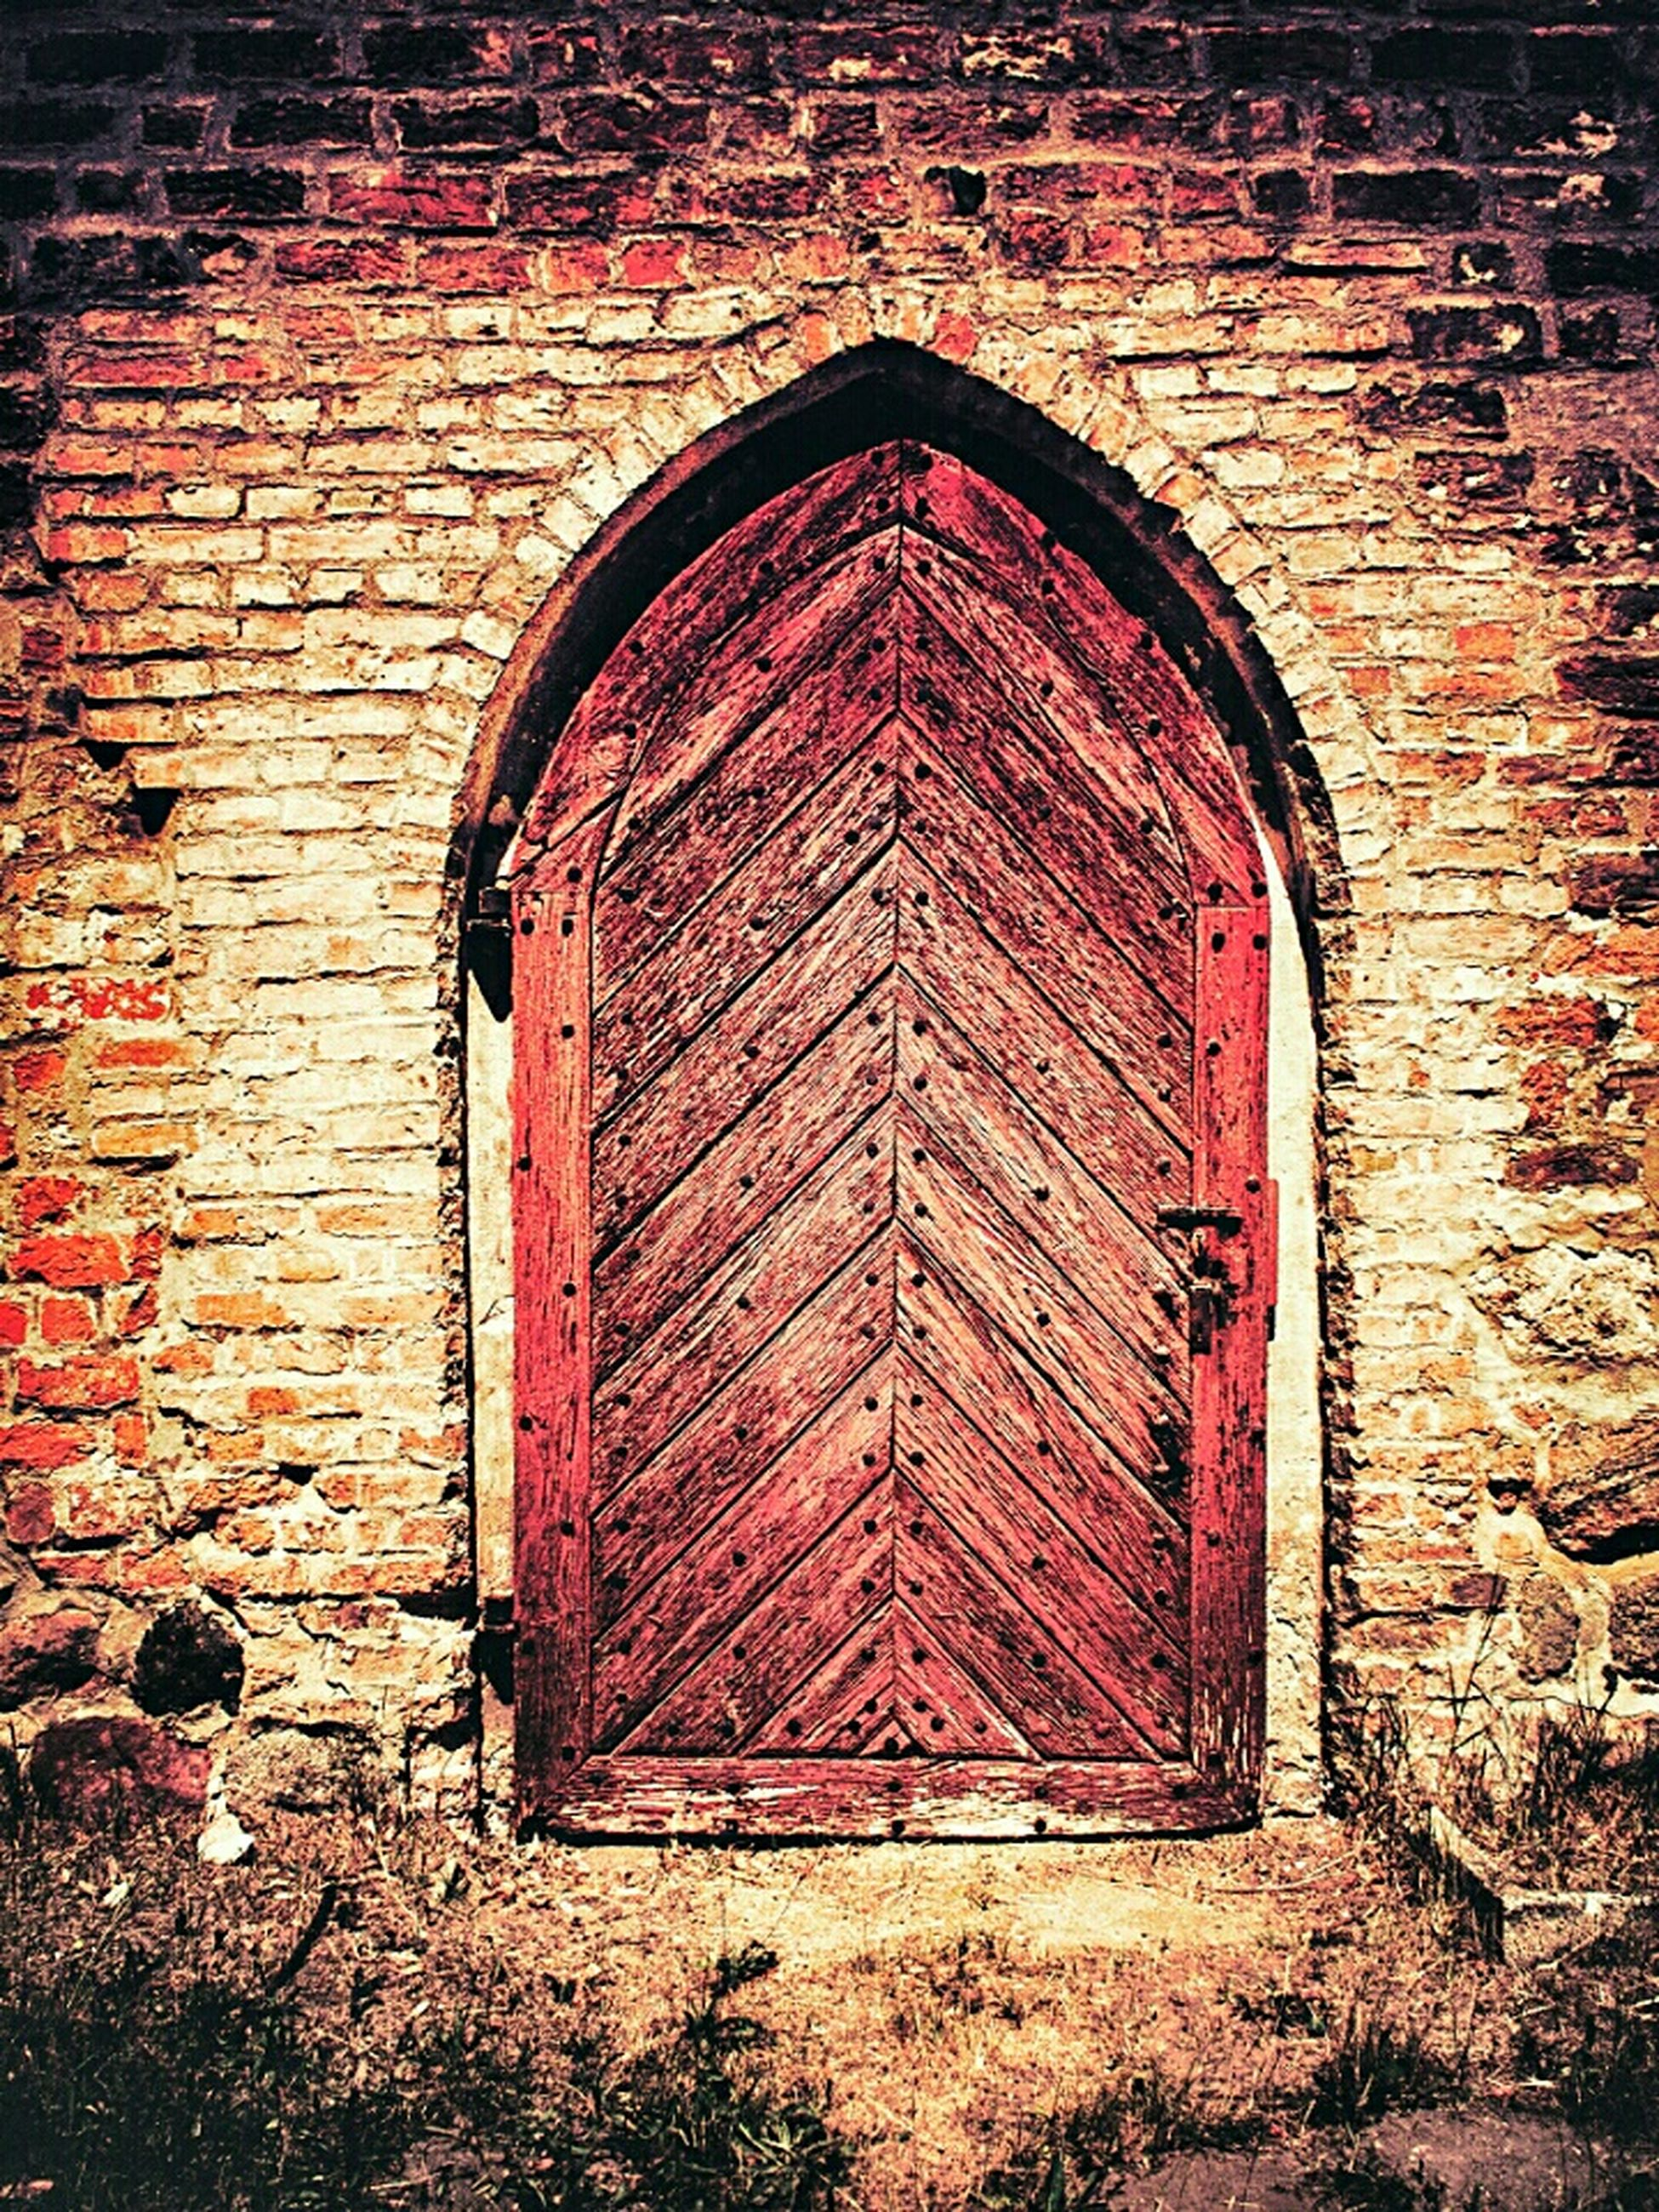 architecture, built structure, building exterior, door, brick wall, closed, arch, red, entrance, window, stone wall, house, wall - building feature, old, protection, day, safety, outdoors, facade, wall